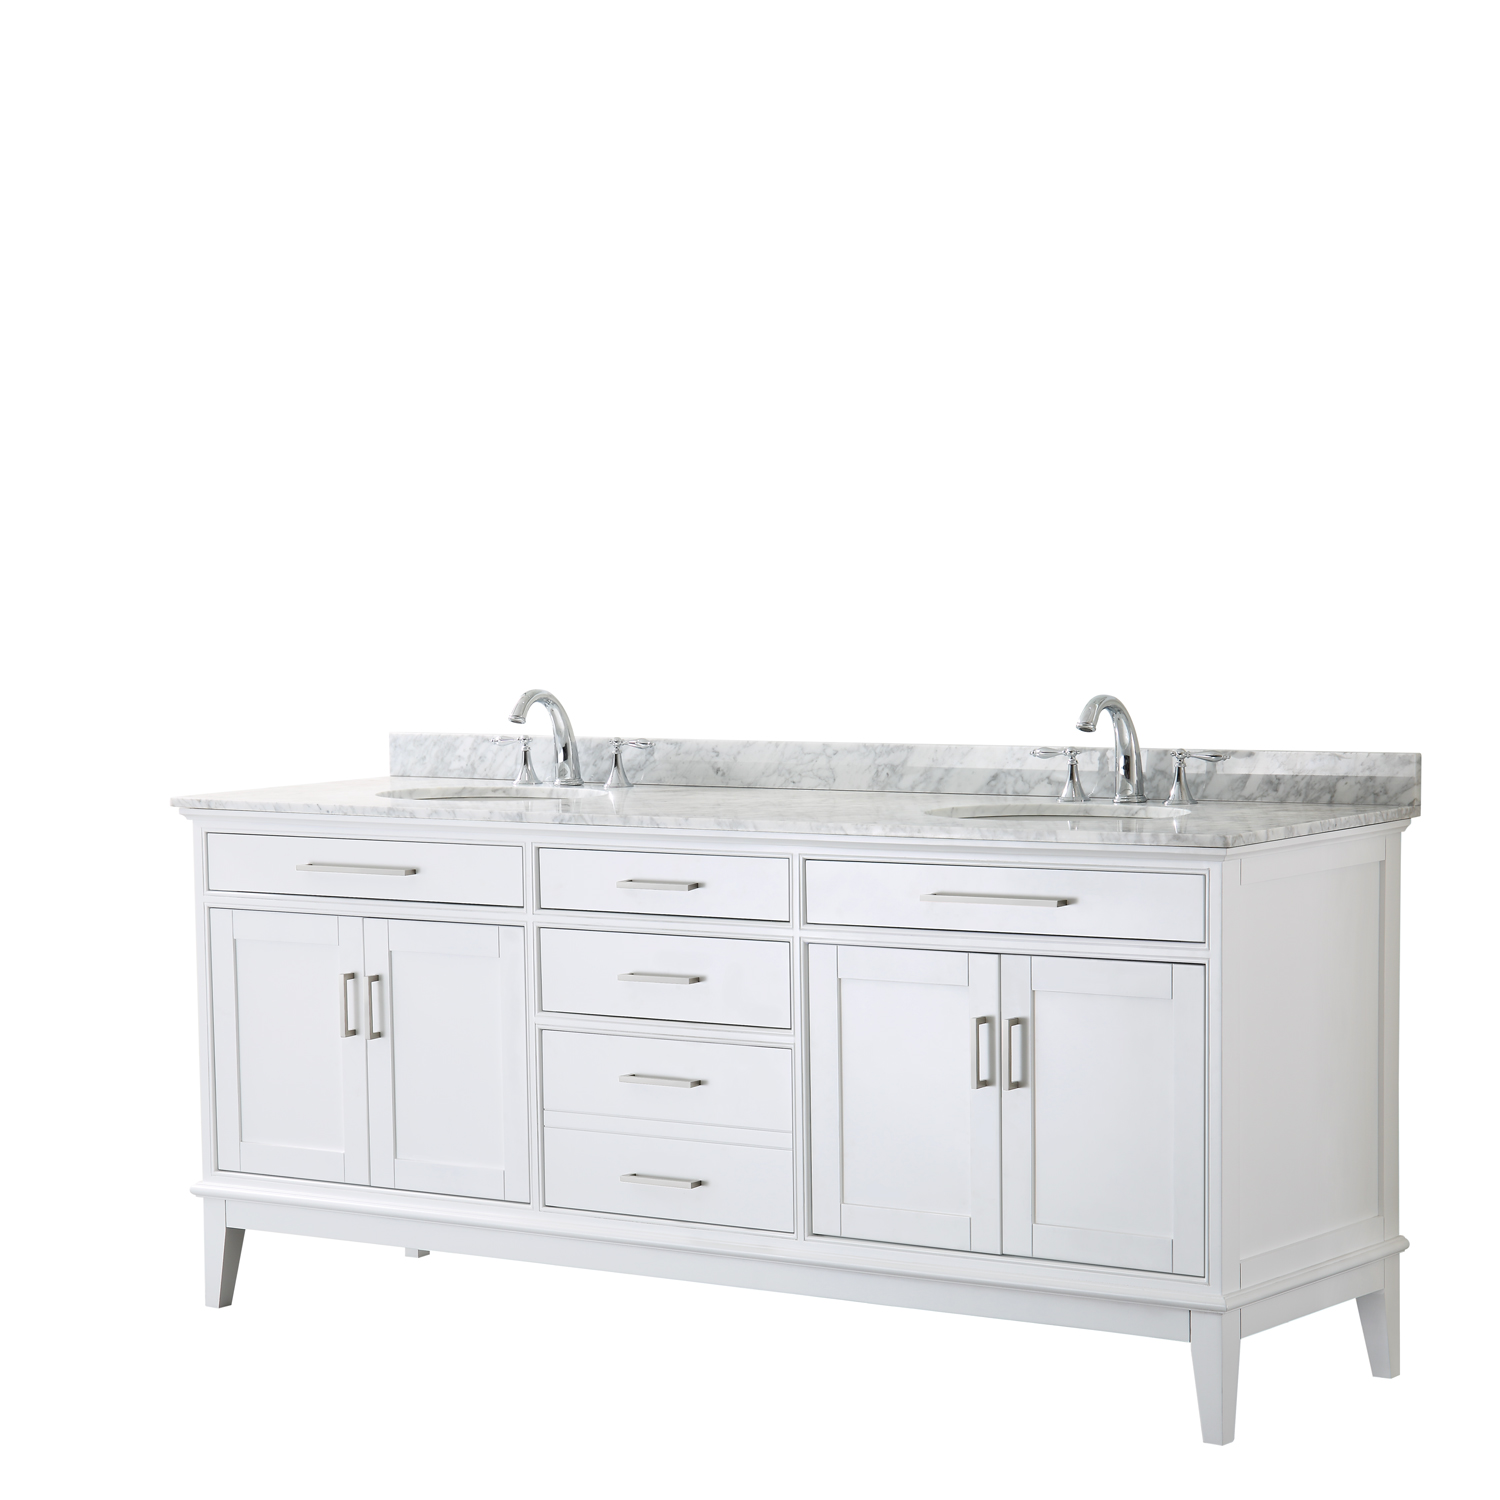 """Contemporary 80"""" Double Bathroom Vanity in White, White Carrara Marble Countertop with Undermount Sinks, and Mirror Options"""